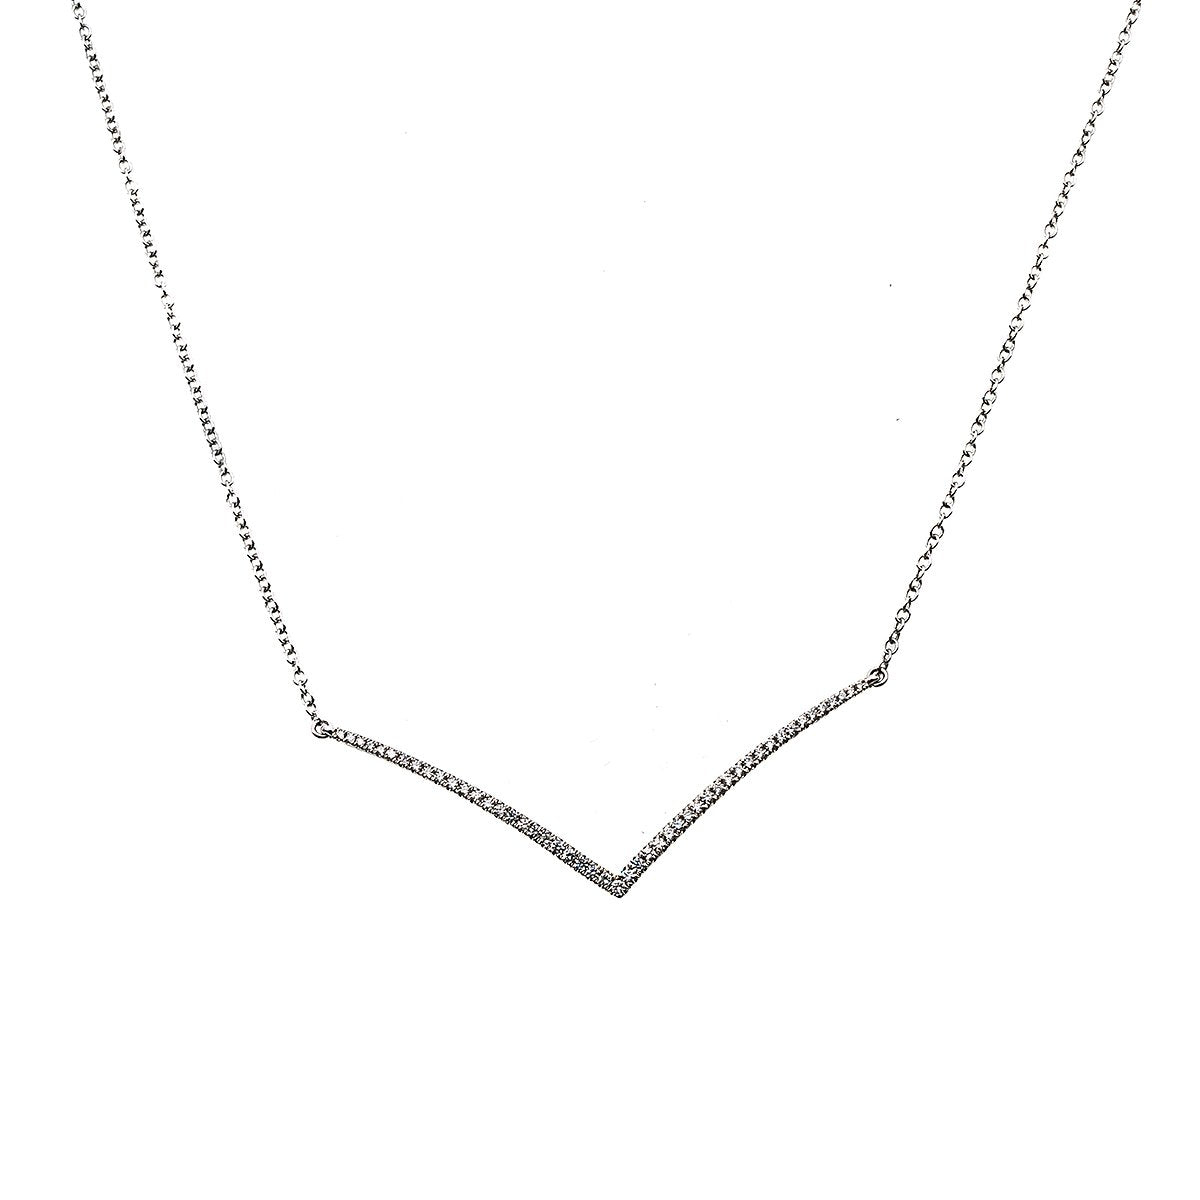 "18K White Gold DDN1005 17"" Women's Necklace With 0.45 CT Diamonds"